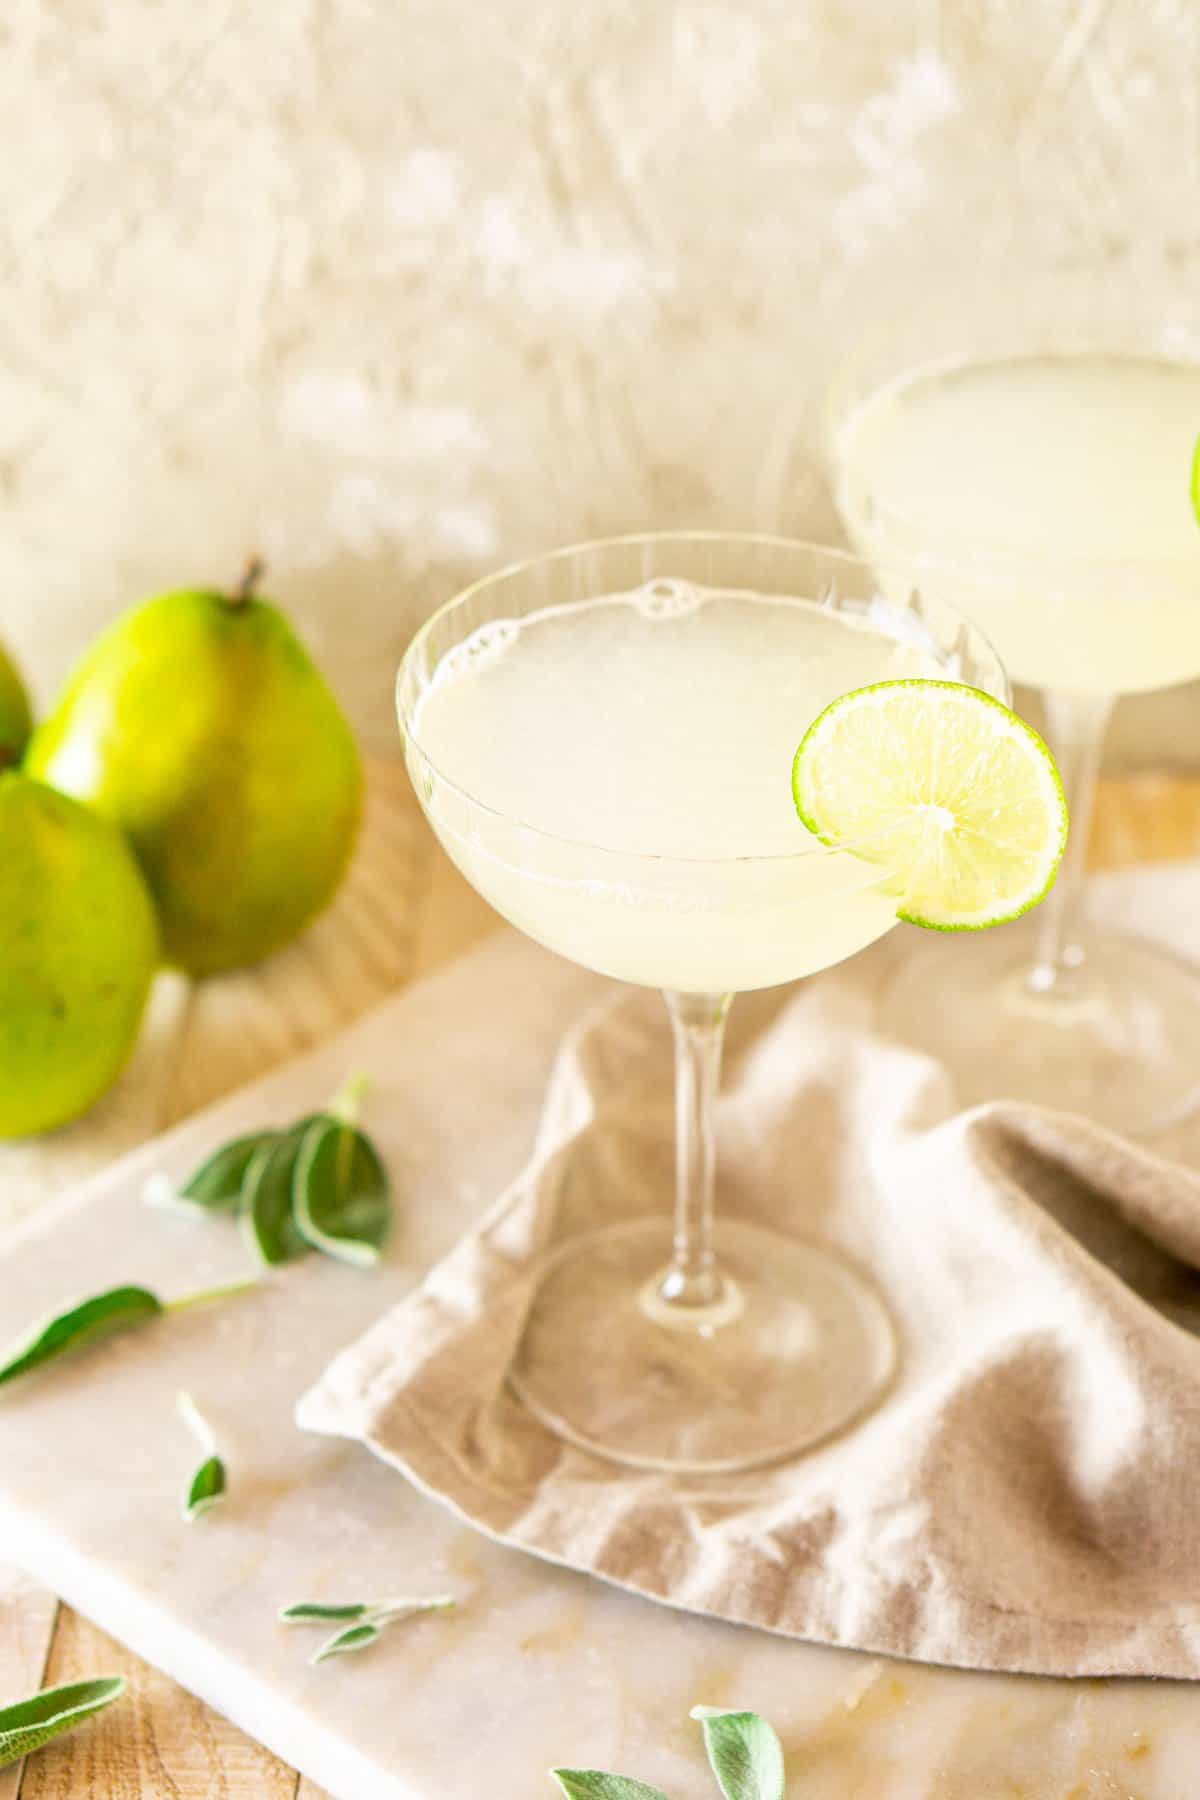 A close-up shot of the gimlet with pears to the side on a white marble board.